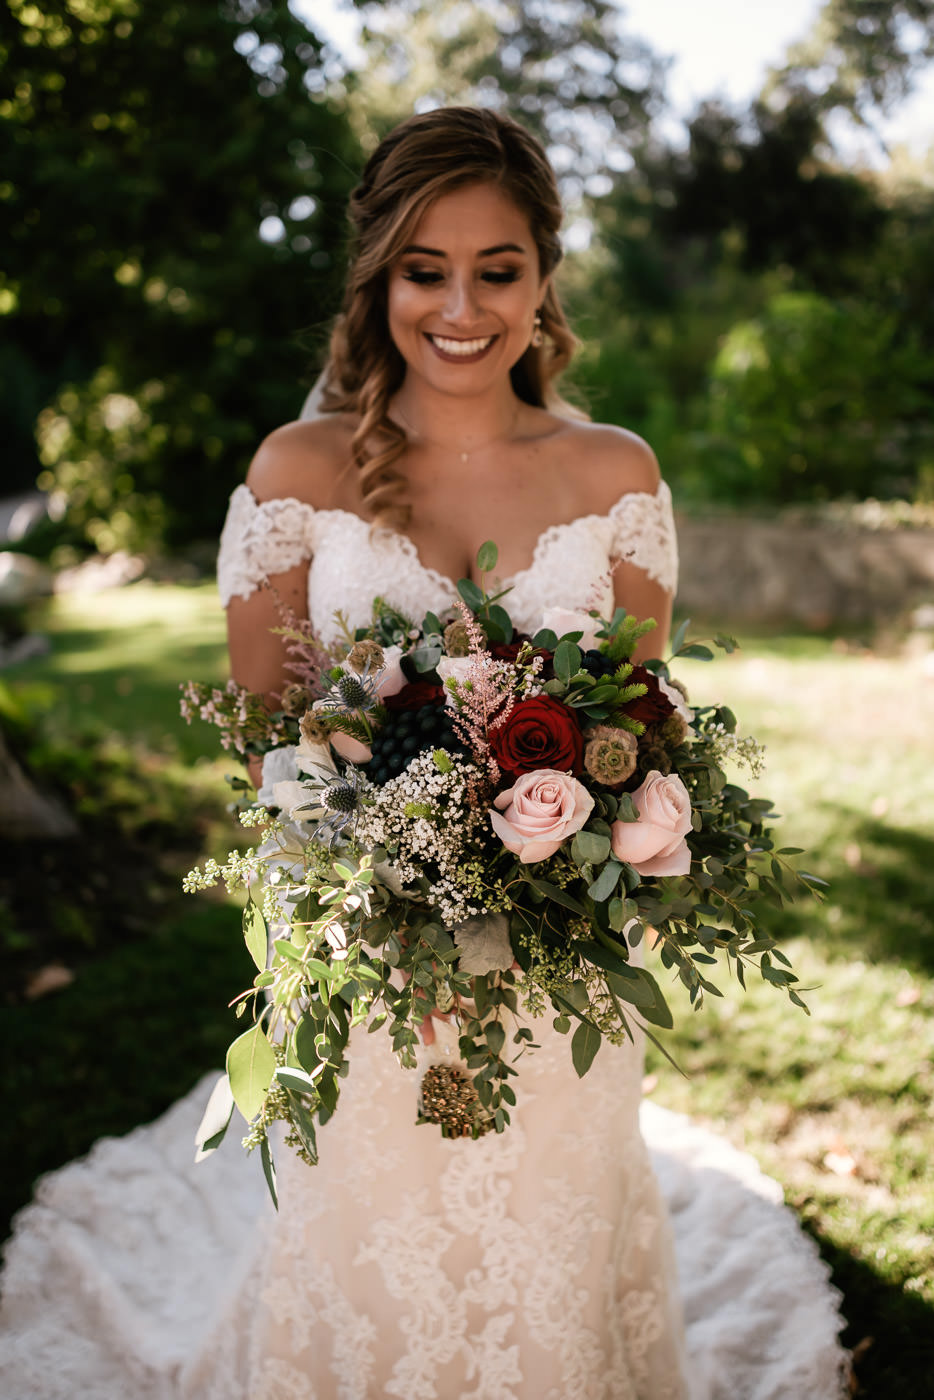 Stunning bride shows off her gorgeous bouquet.